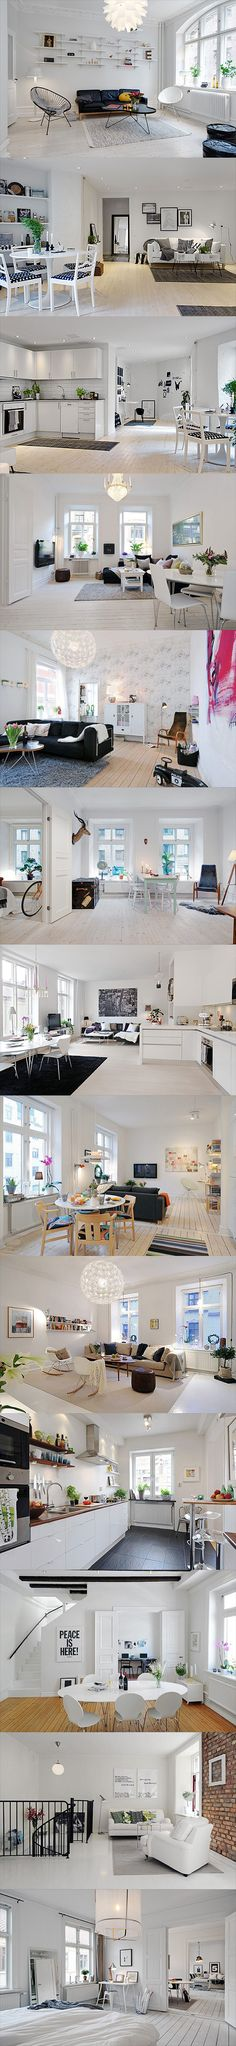 Beautiful & Stylish Scandinavian interior design inspiration 01 - I like some of these bit not all. Why must there a head on the wall??